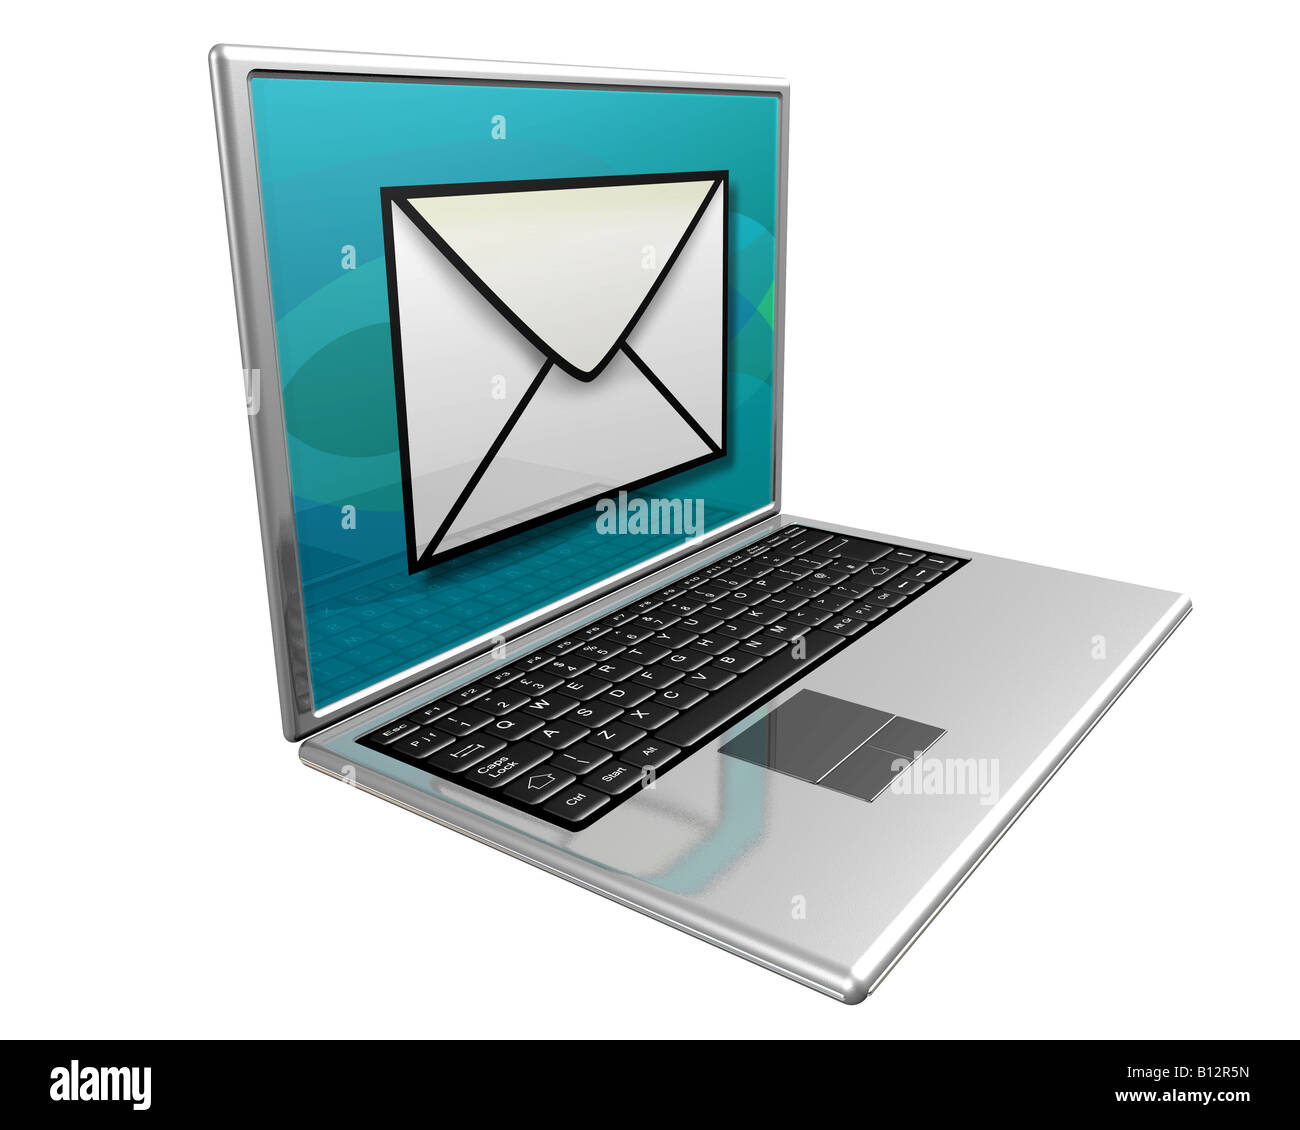 Laptop computer displaying a large mail icon indicating you have mail - Stock Image